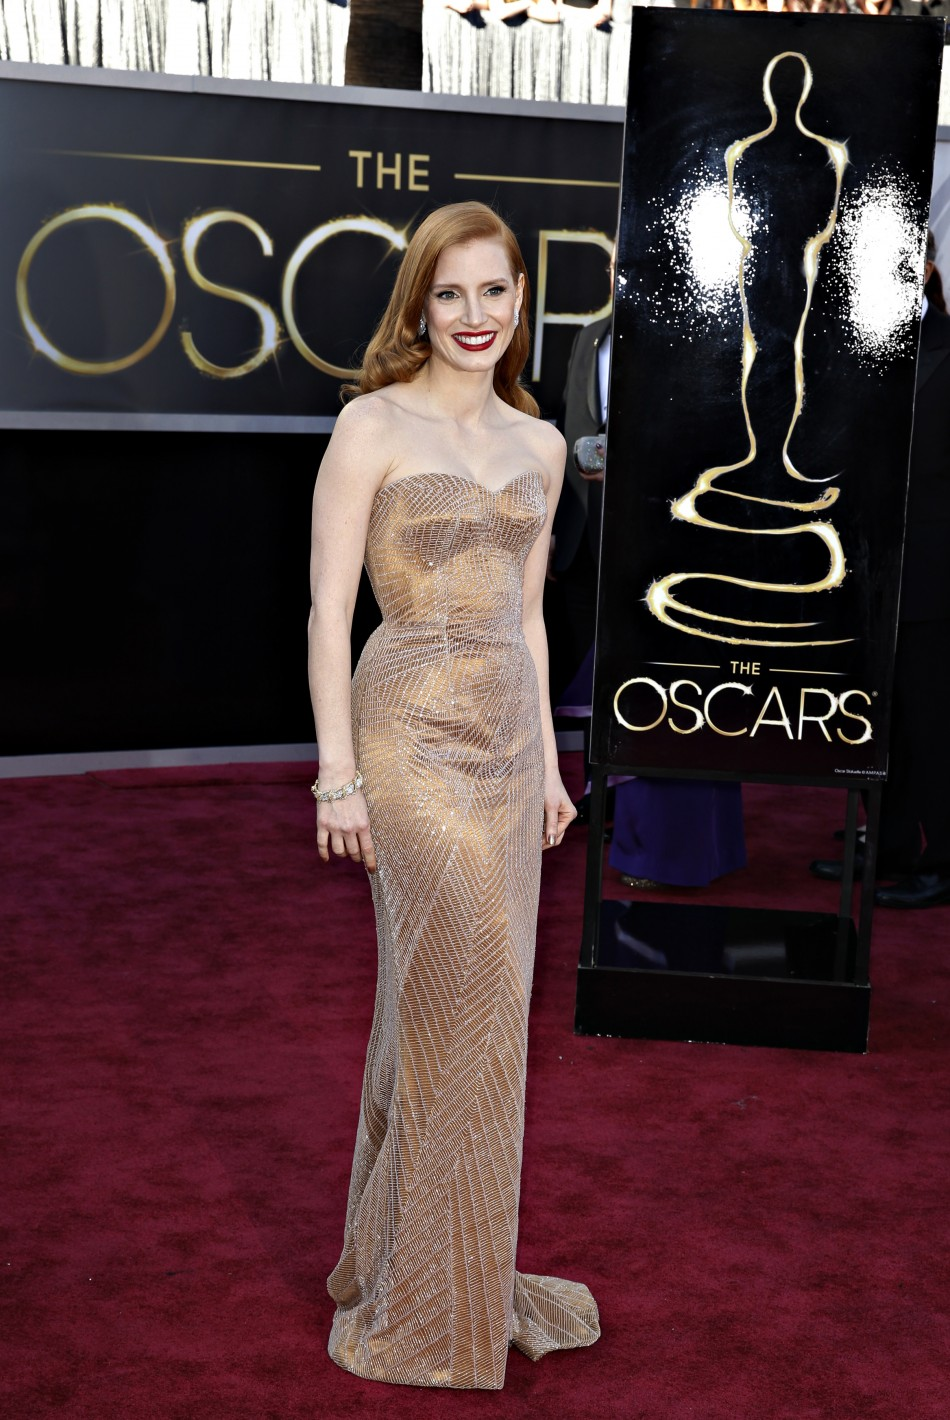 Jessica Chastain, best actress nominee for her role in Zero Dark Thirty, arrives at the 85th Academy Awards in Hollywood, California February 24, 2013.